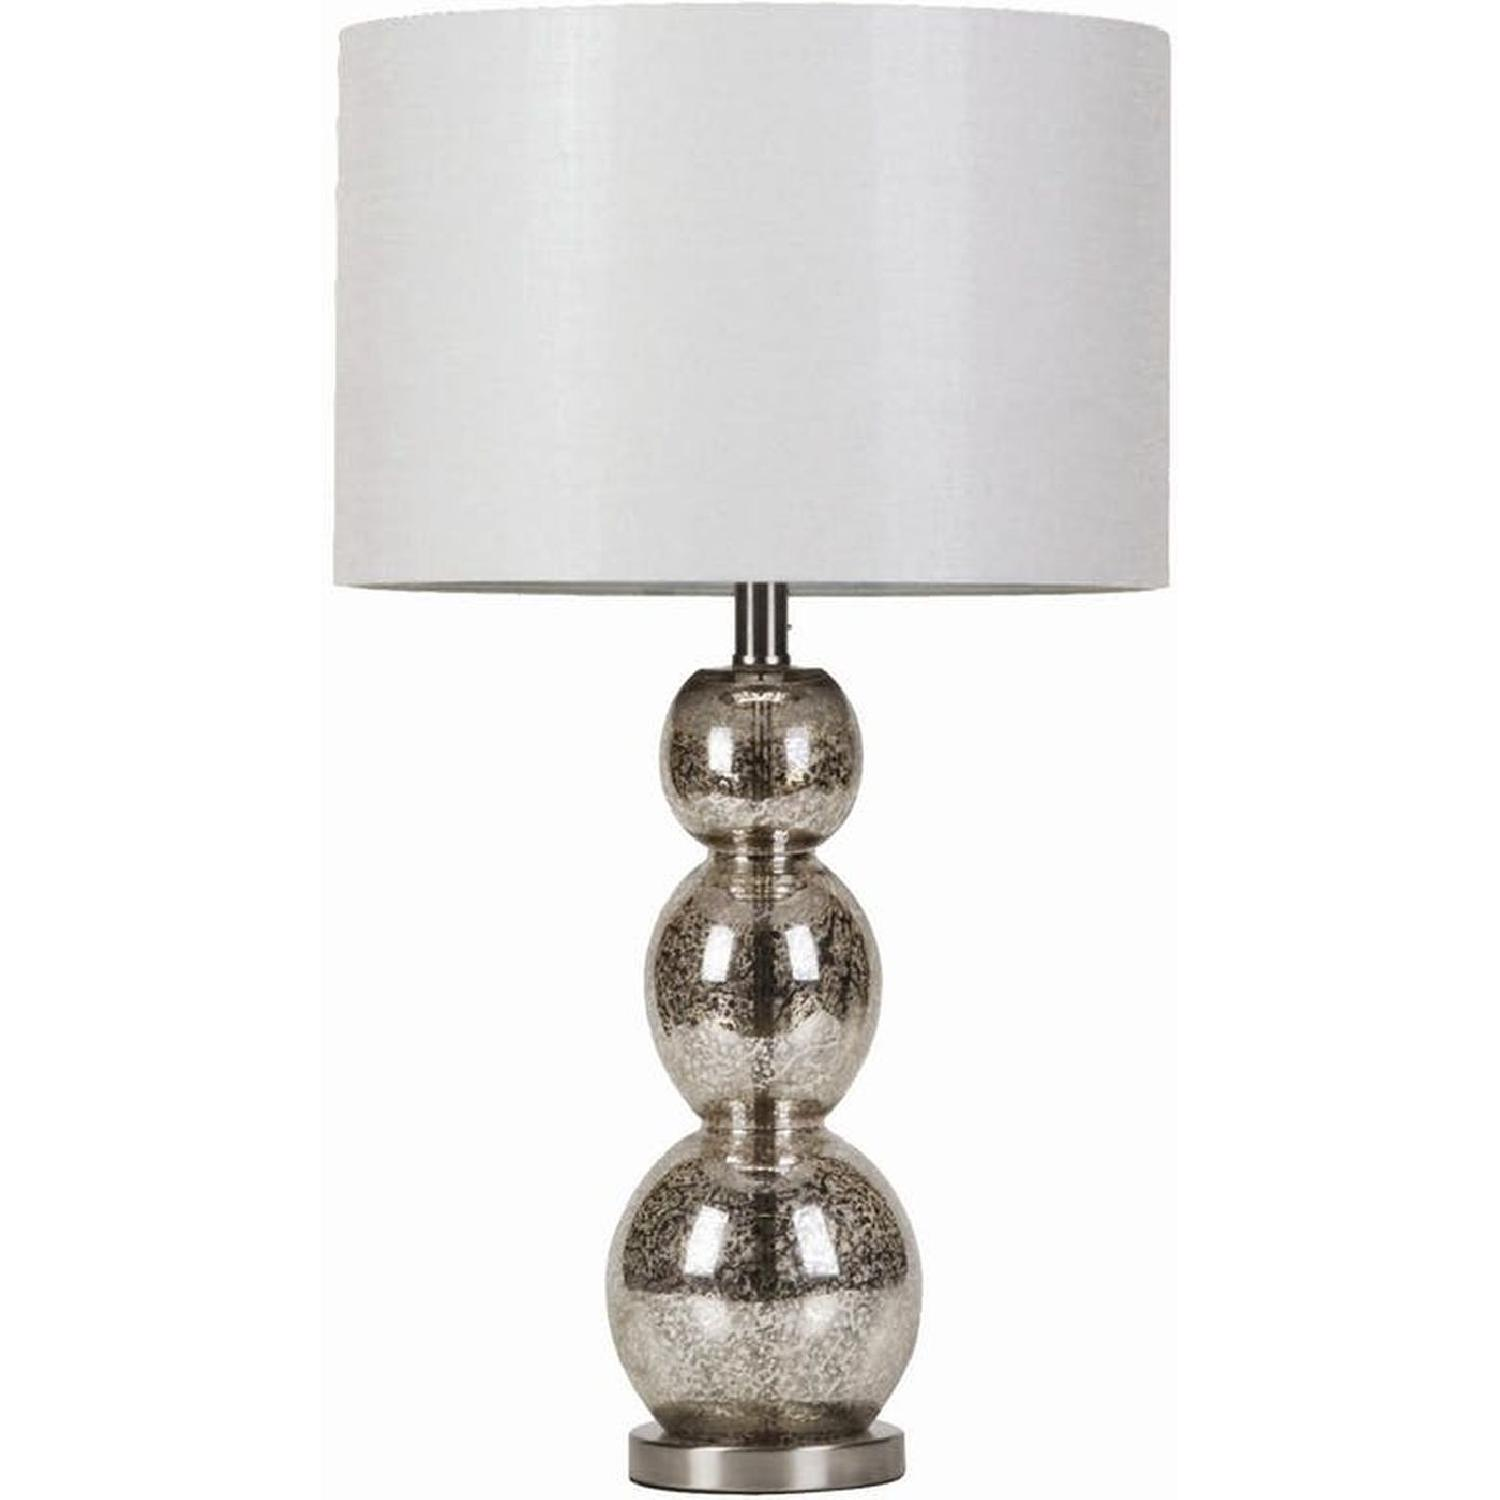 Table Lamp w/ Perpendicular Lines in an Architectural Frame - image-8